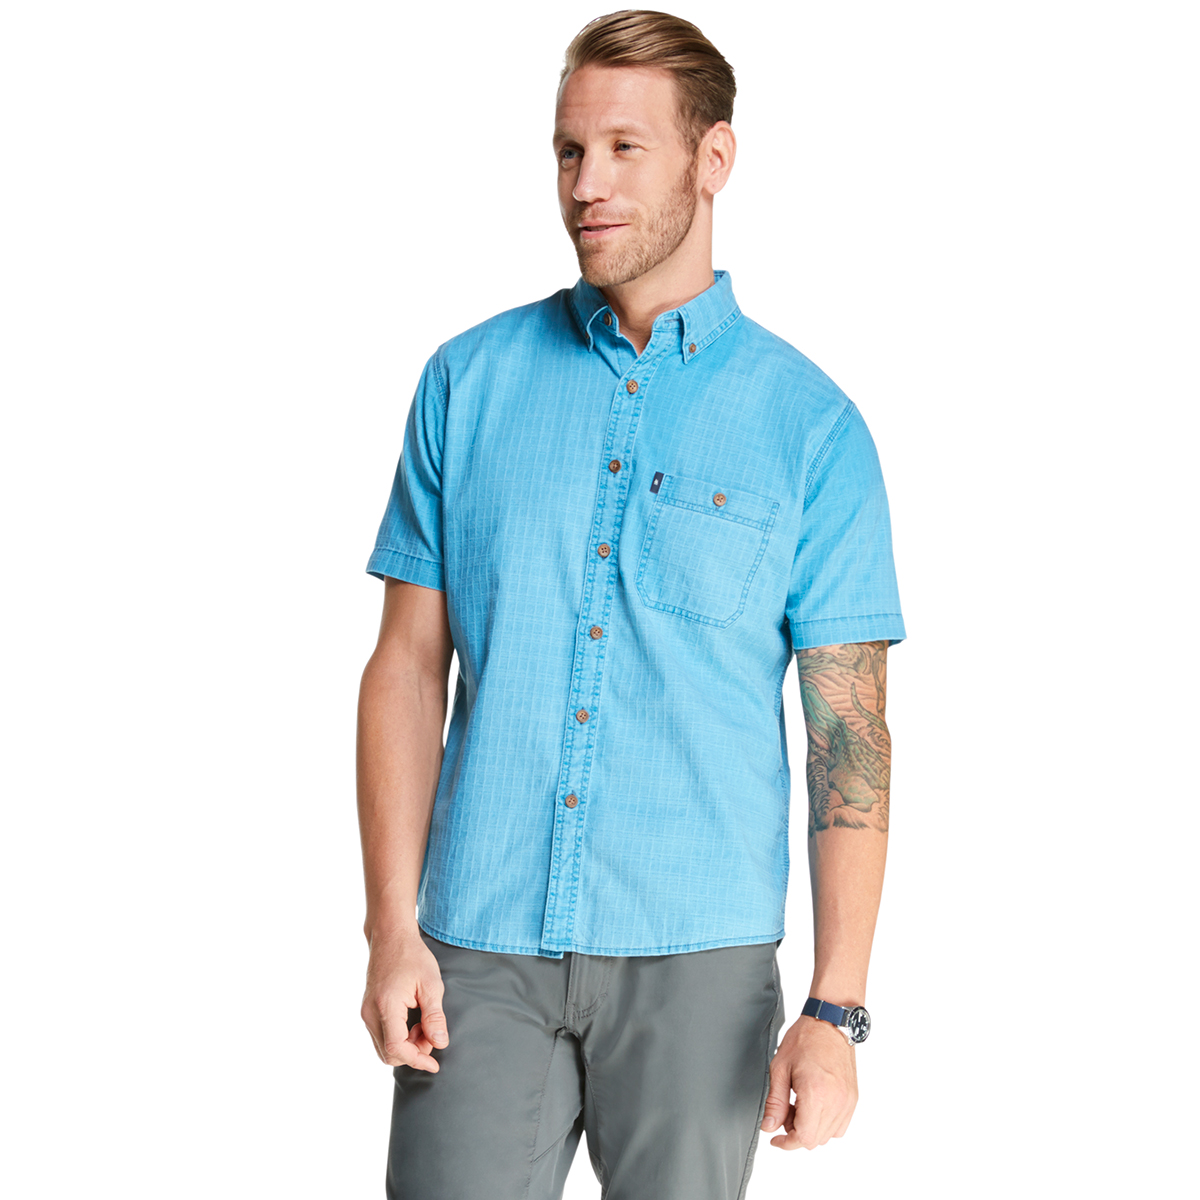 G.h. Bass & Co. Men's Salt Cove Pigment Dobby Short-Sleeve Button-Down Shirt - Blue, XXL